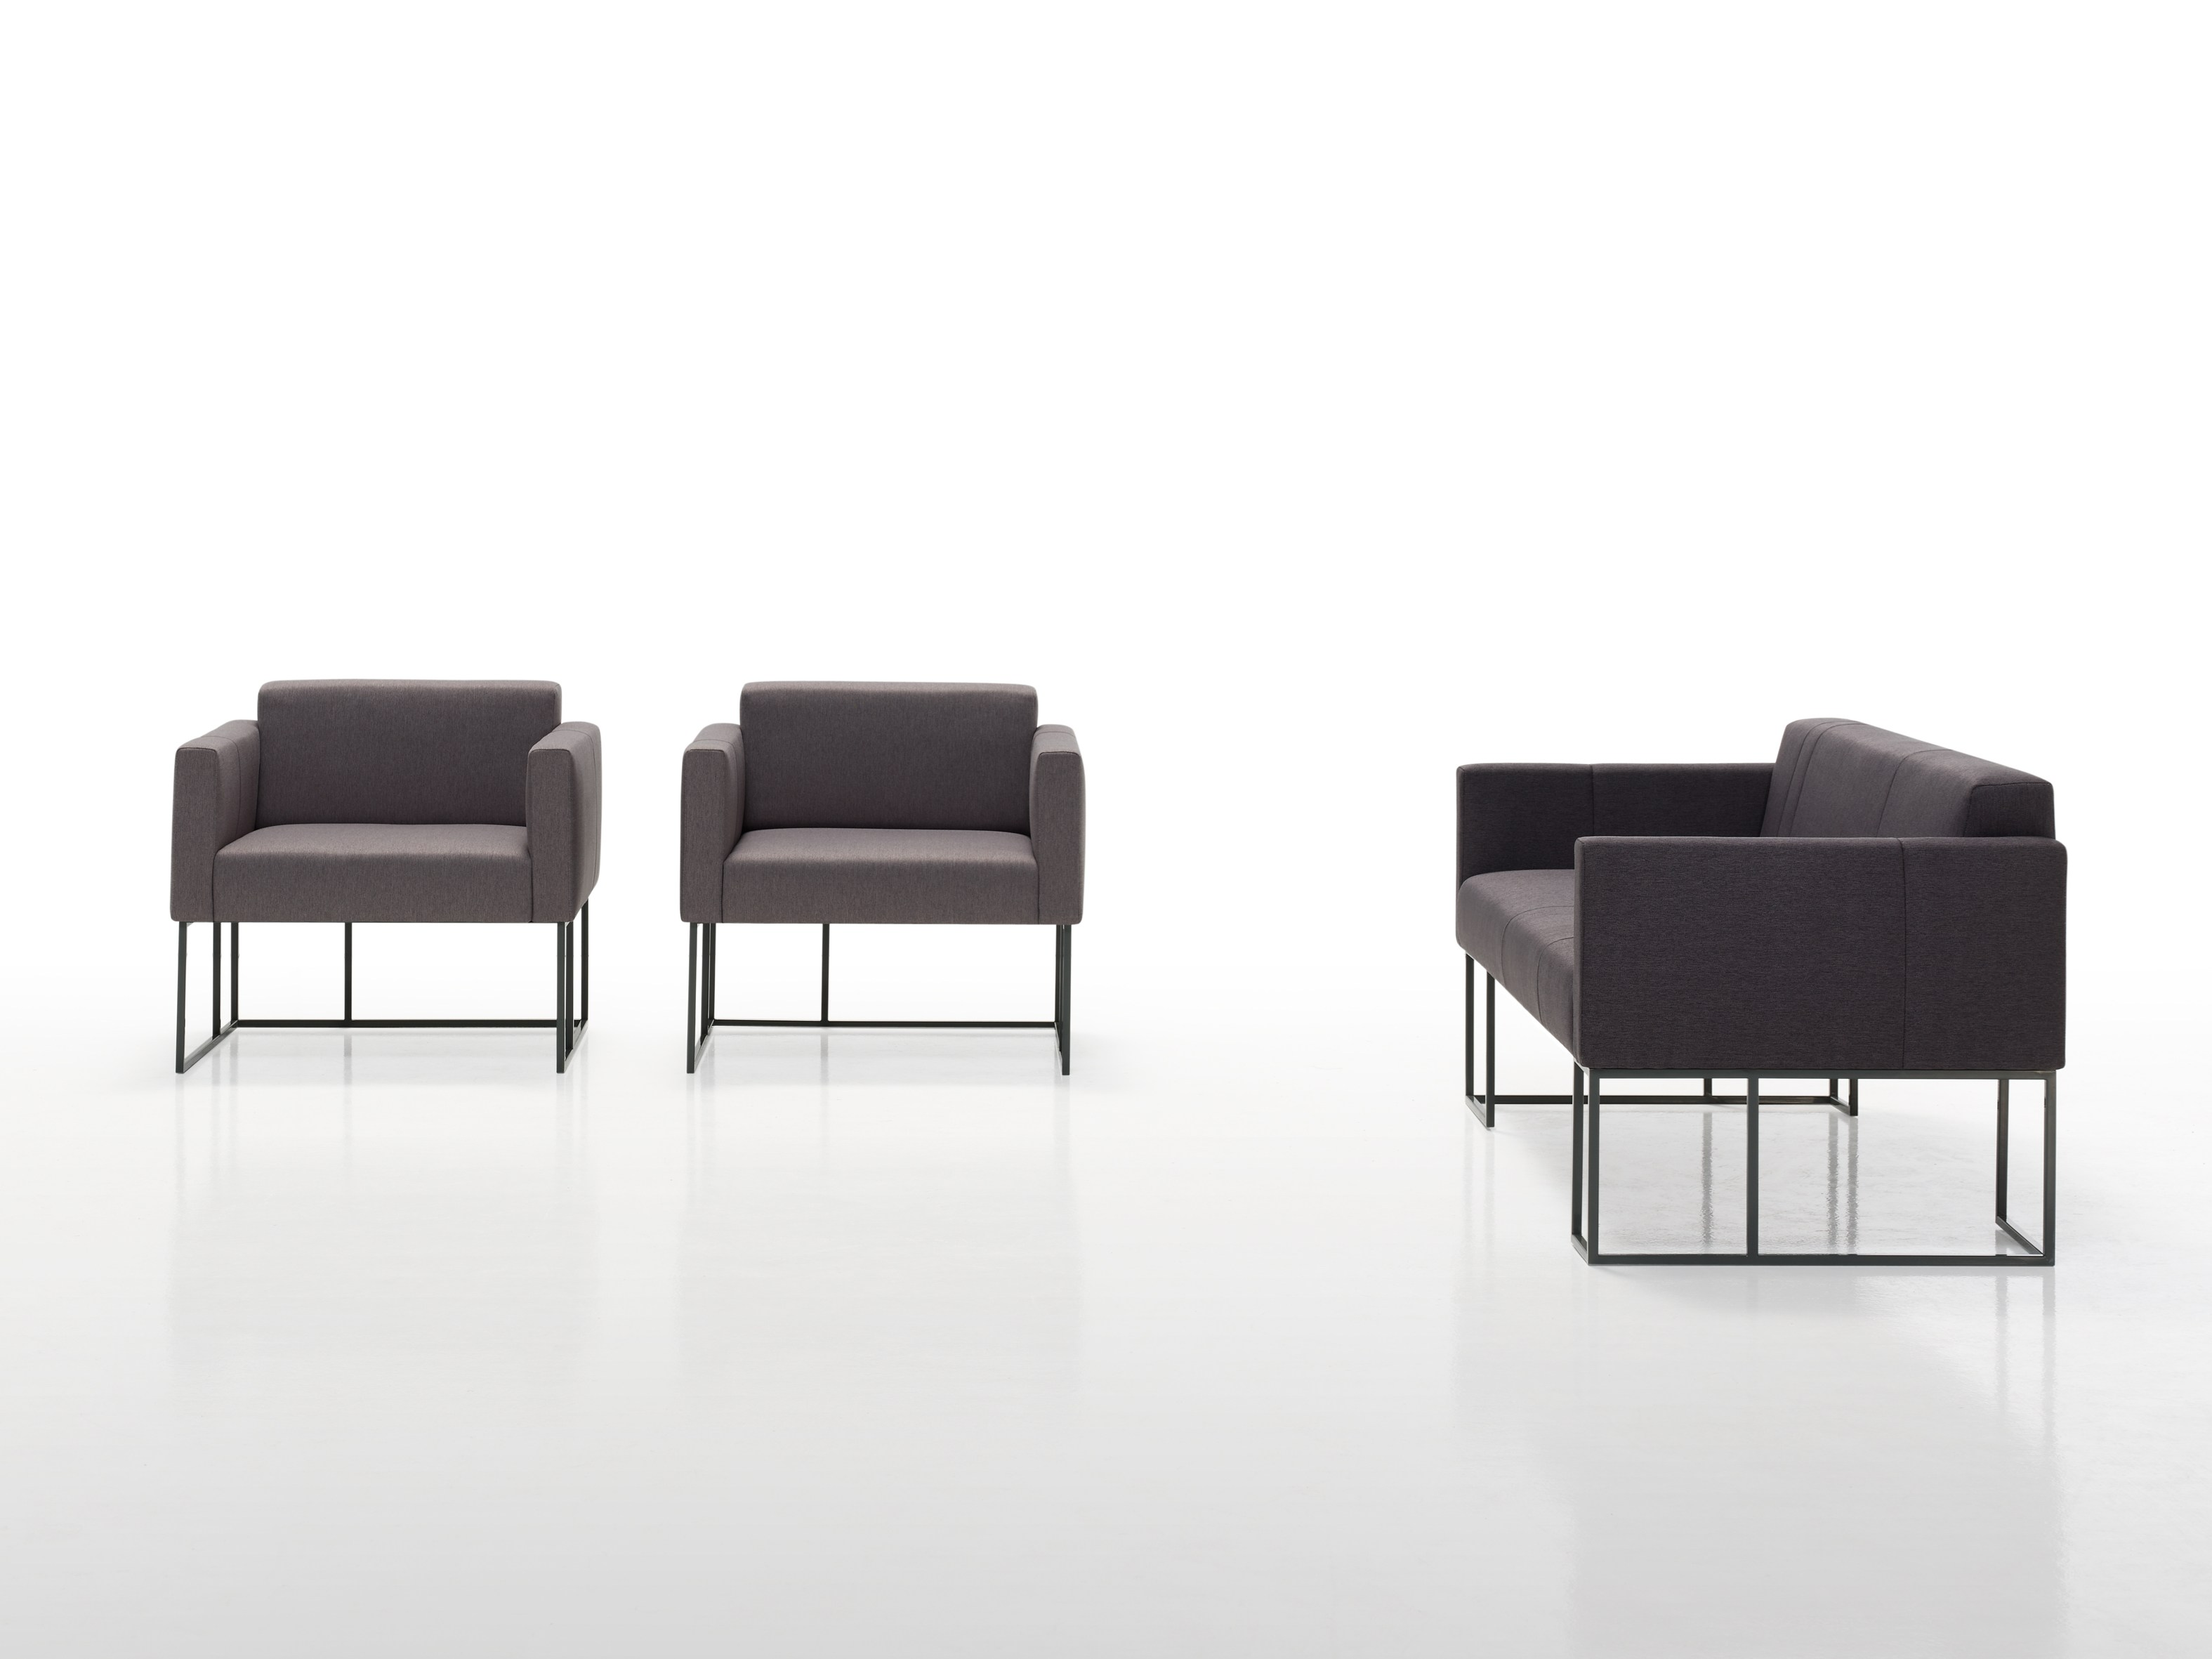 Elements xs sill n peque o by inclass mobles dise o ram n - Sillas y sillones modernos ...